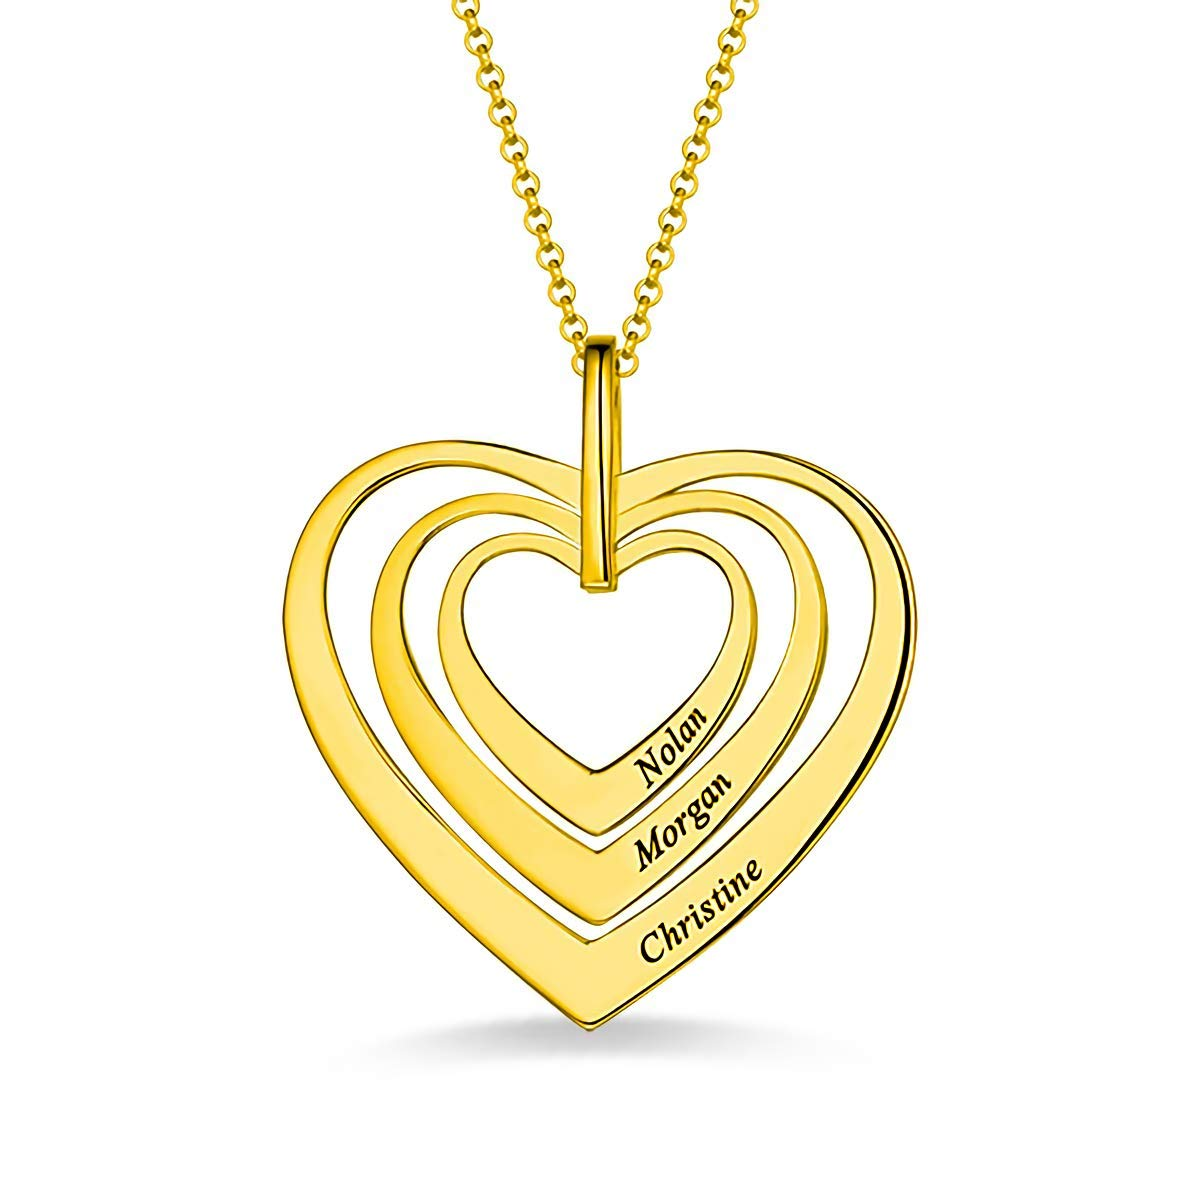 Hua Meng Personalised Family Name Necklace 3 Names Heart Engraved Necklace Pendant